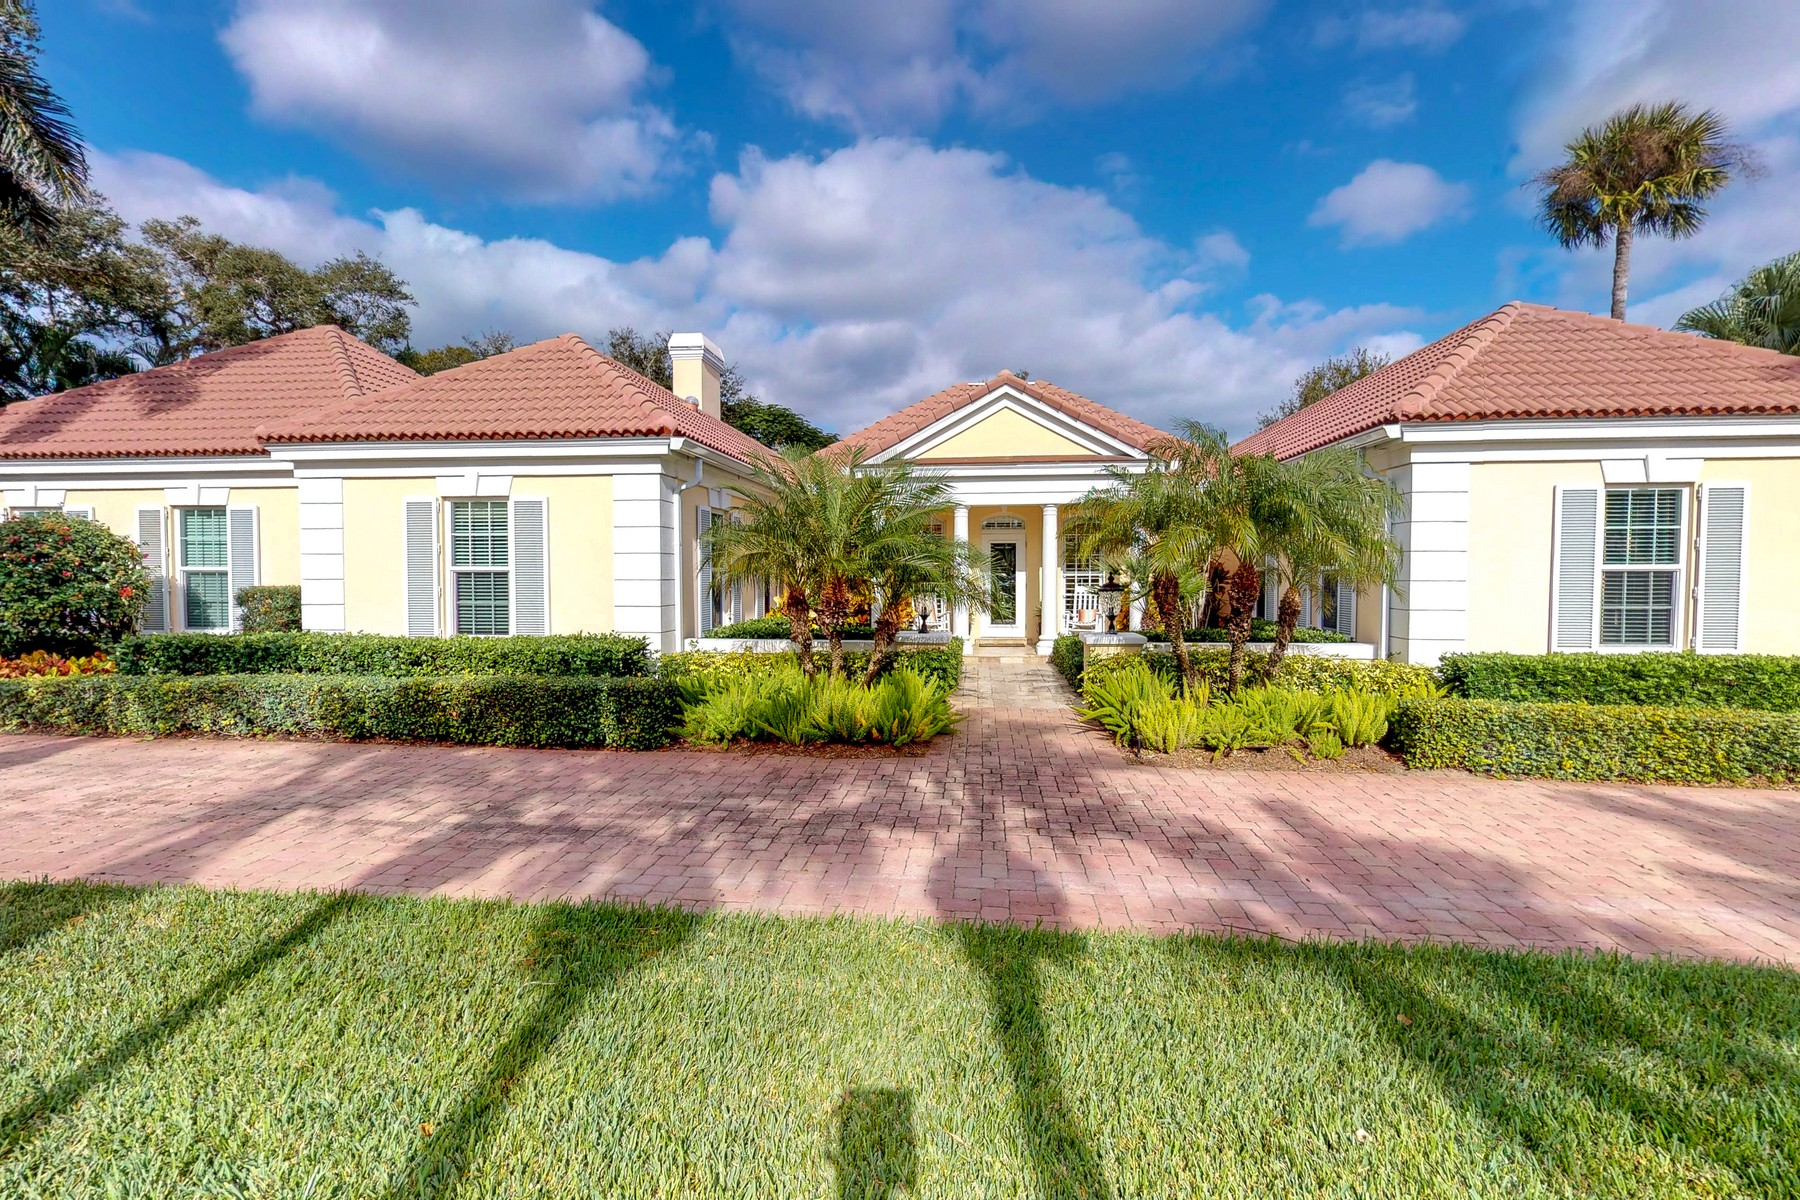 Single Family Home for Sale at This Is It! Paradise in Vero! 411 Shores Drive Vero Beach, Florida 32963 United States